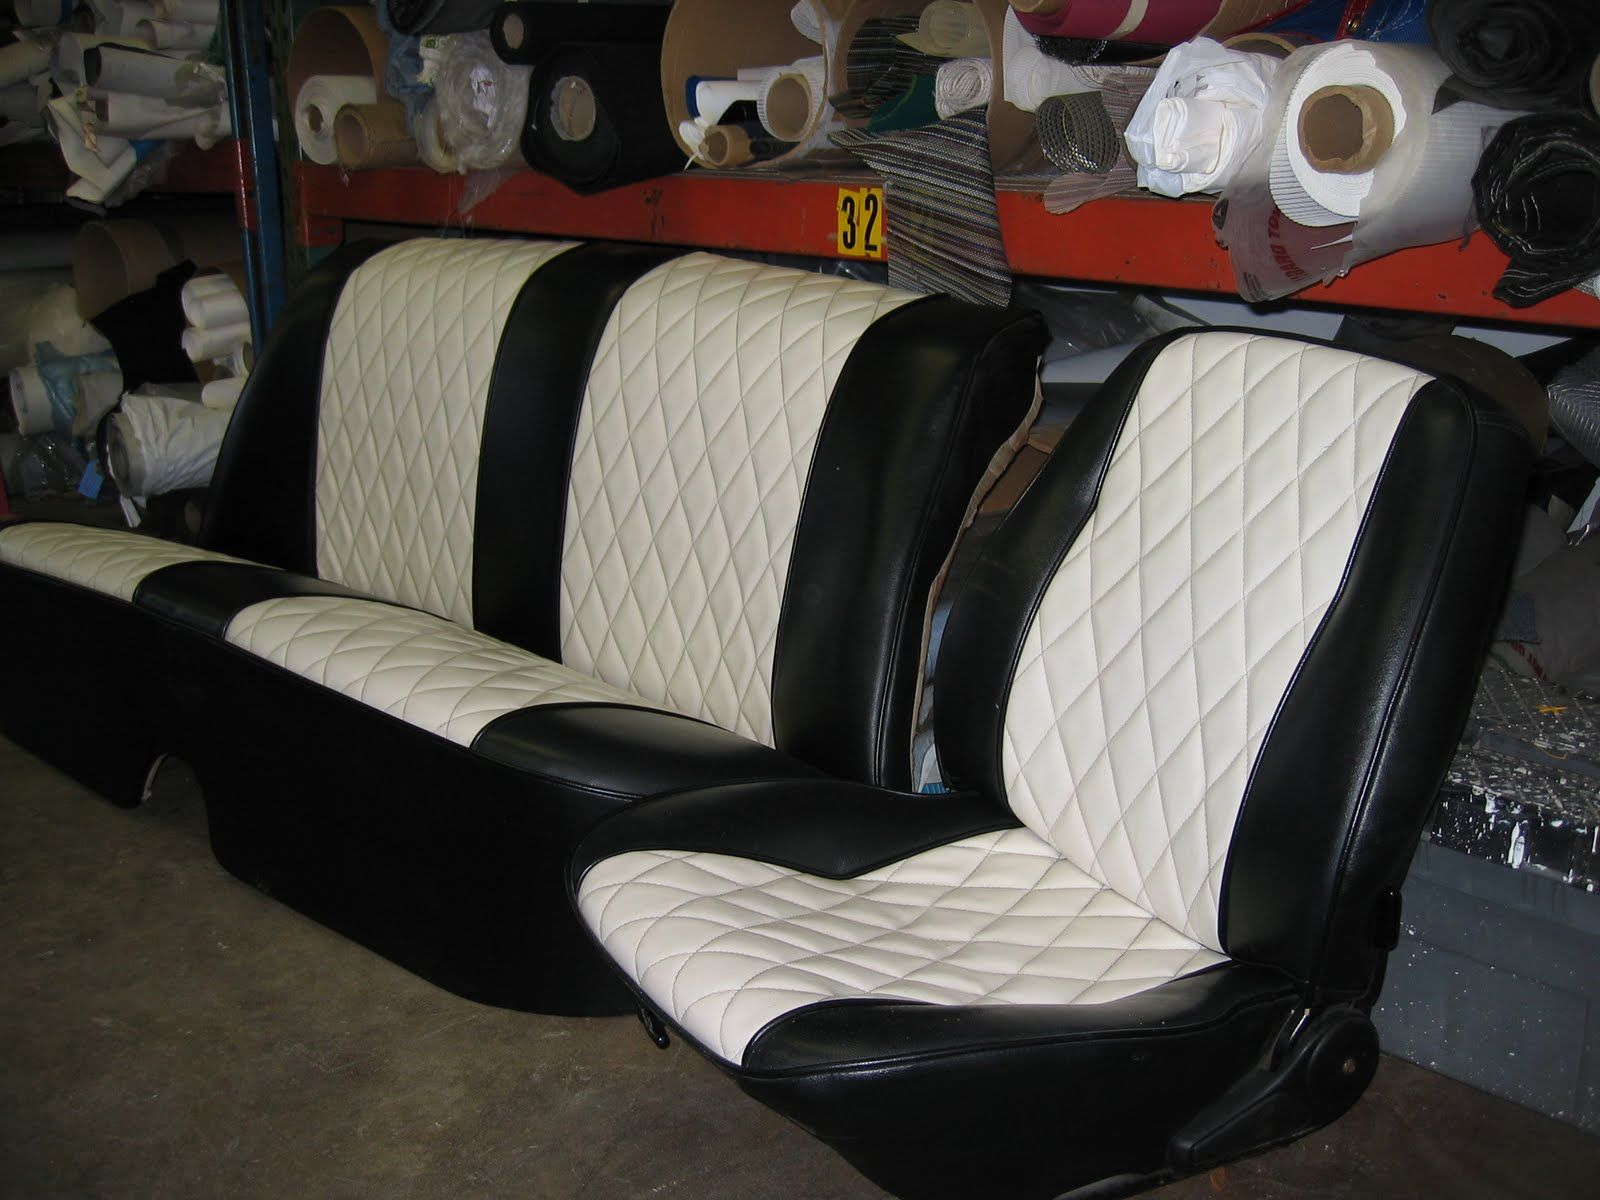 Homestyle Custom Upholstery and Awning: Custom Car Seats, 1600x1200